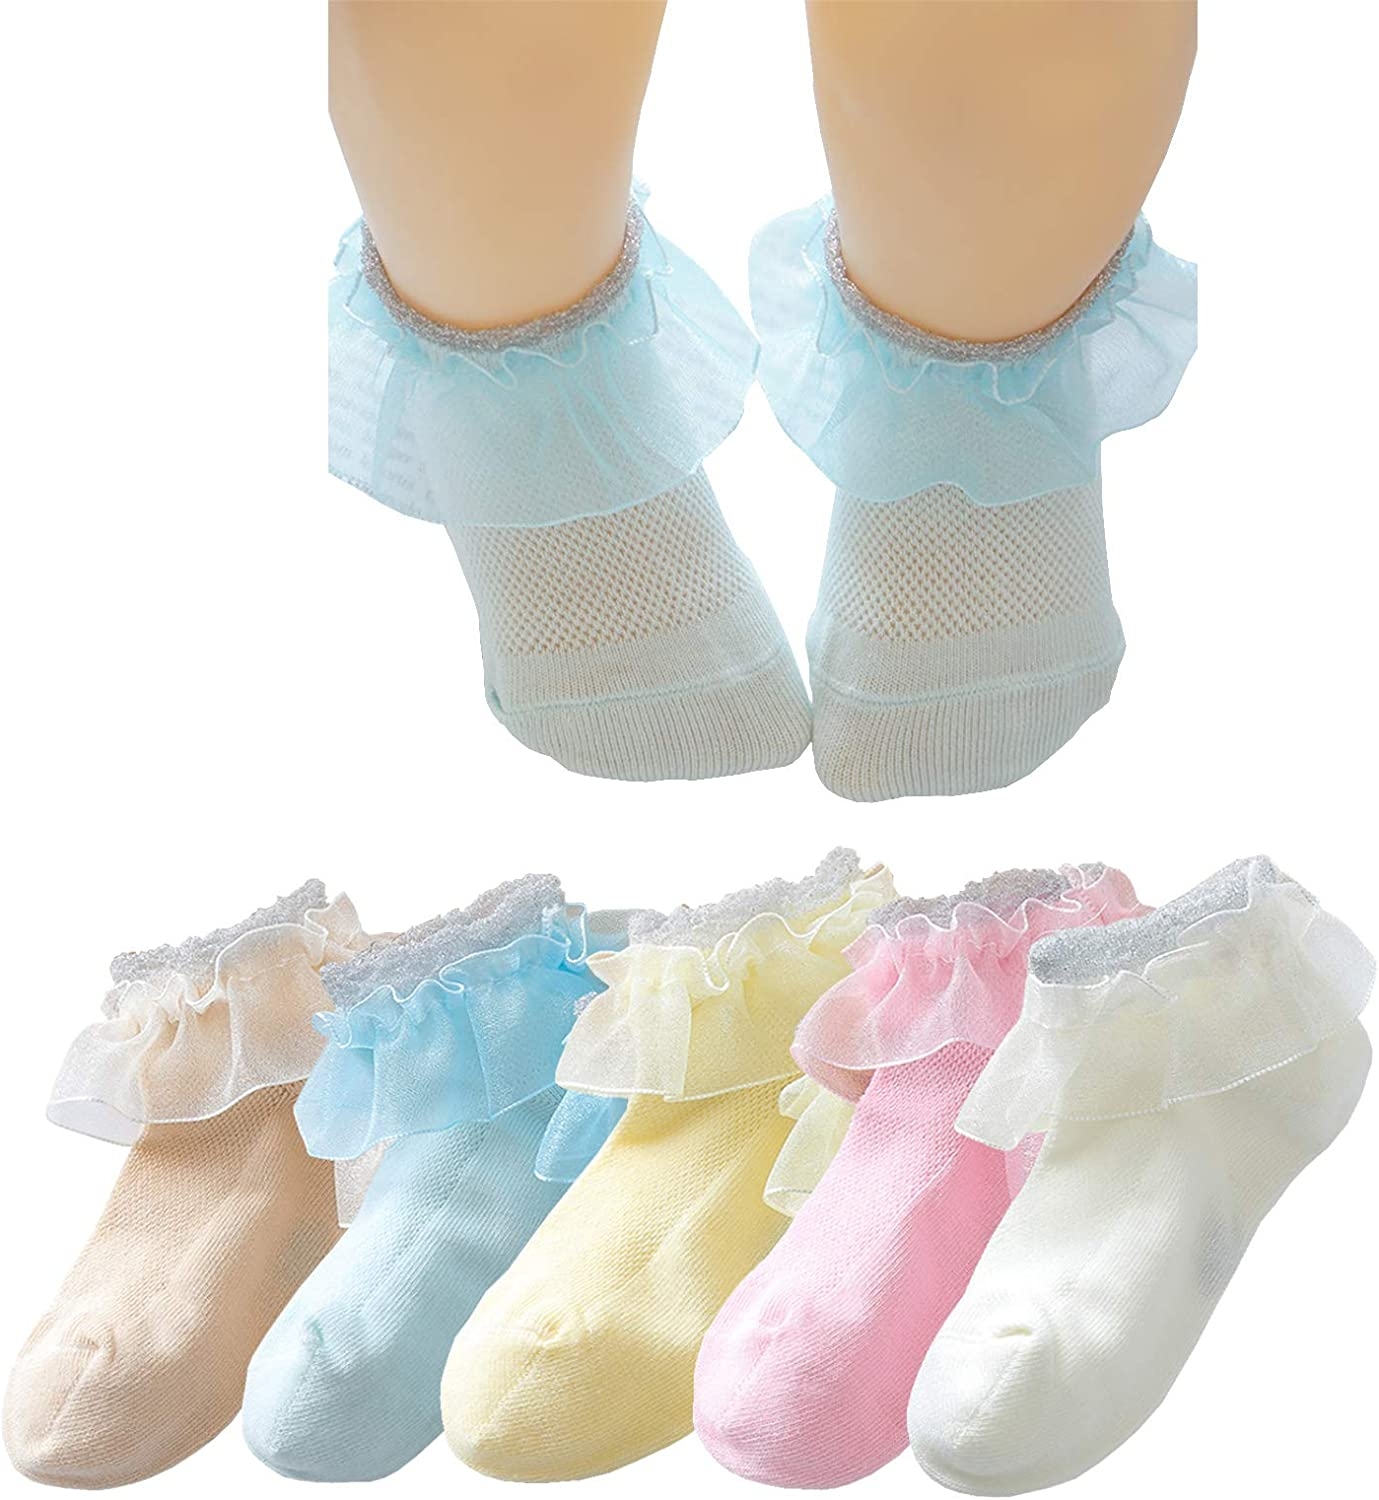 Rainbow Lace Frilly Ruffles excellence Princess Toddlers Max 85% OFF Socks Ankle Dress